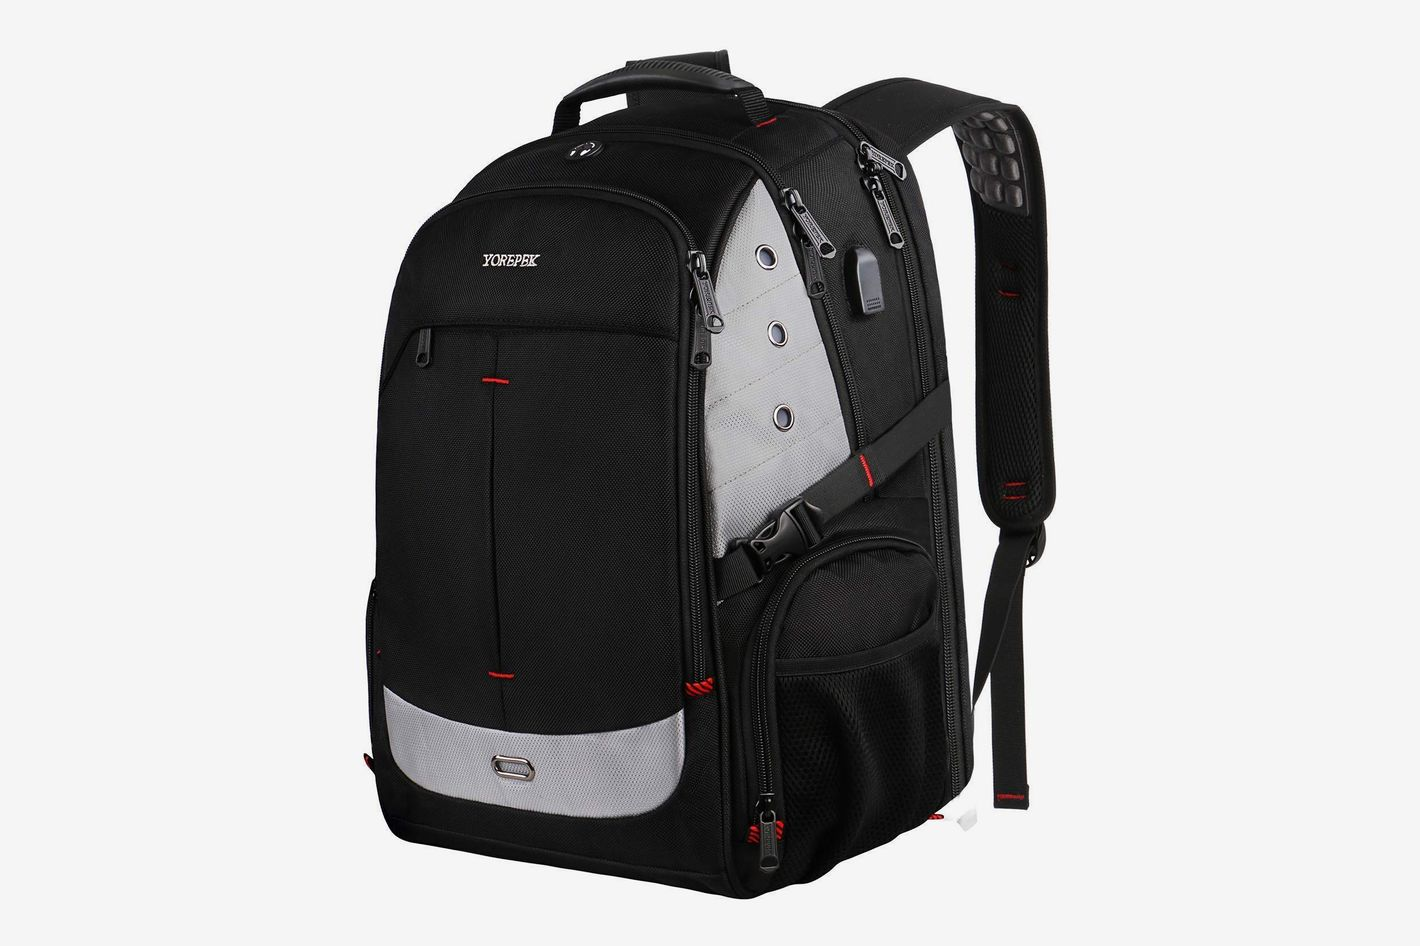 97d7822e68c1 Yorepek Large Travel Laptop Backpack